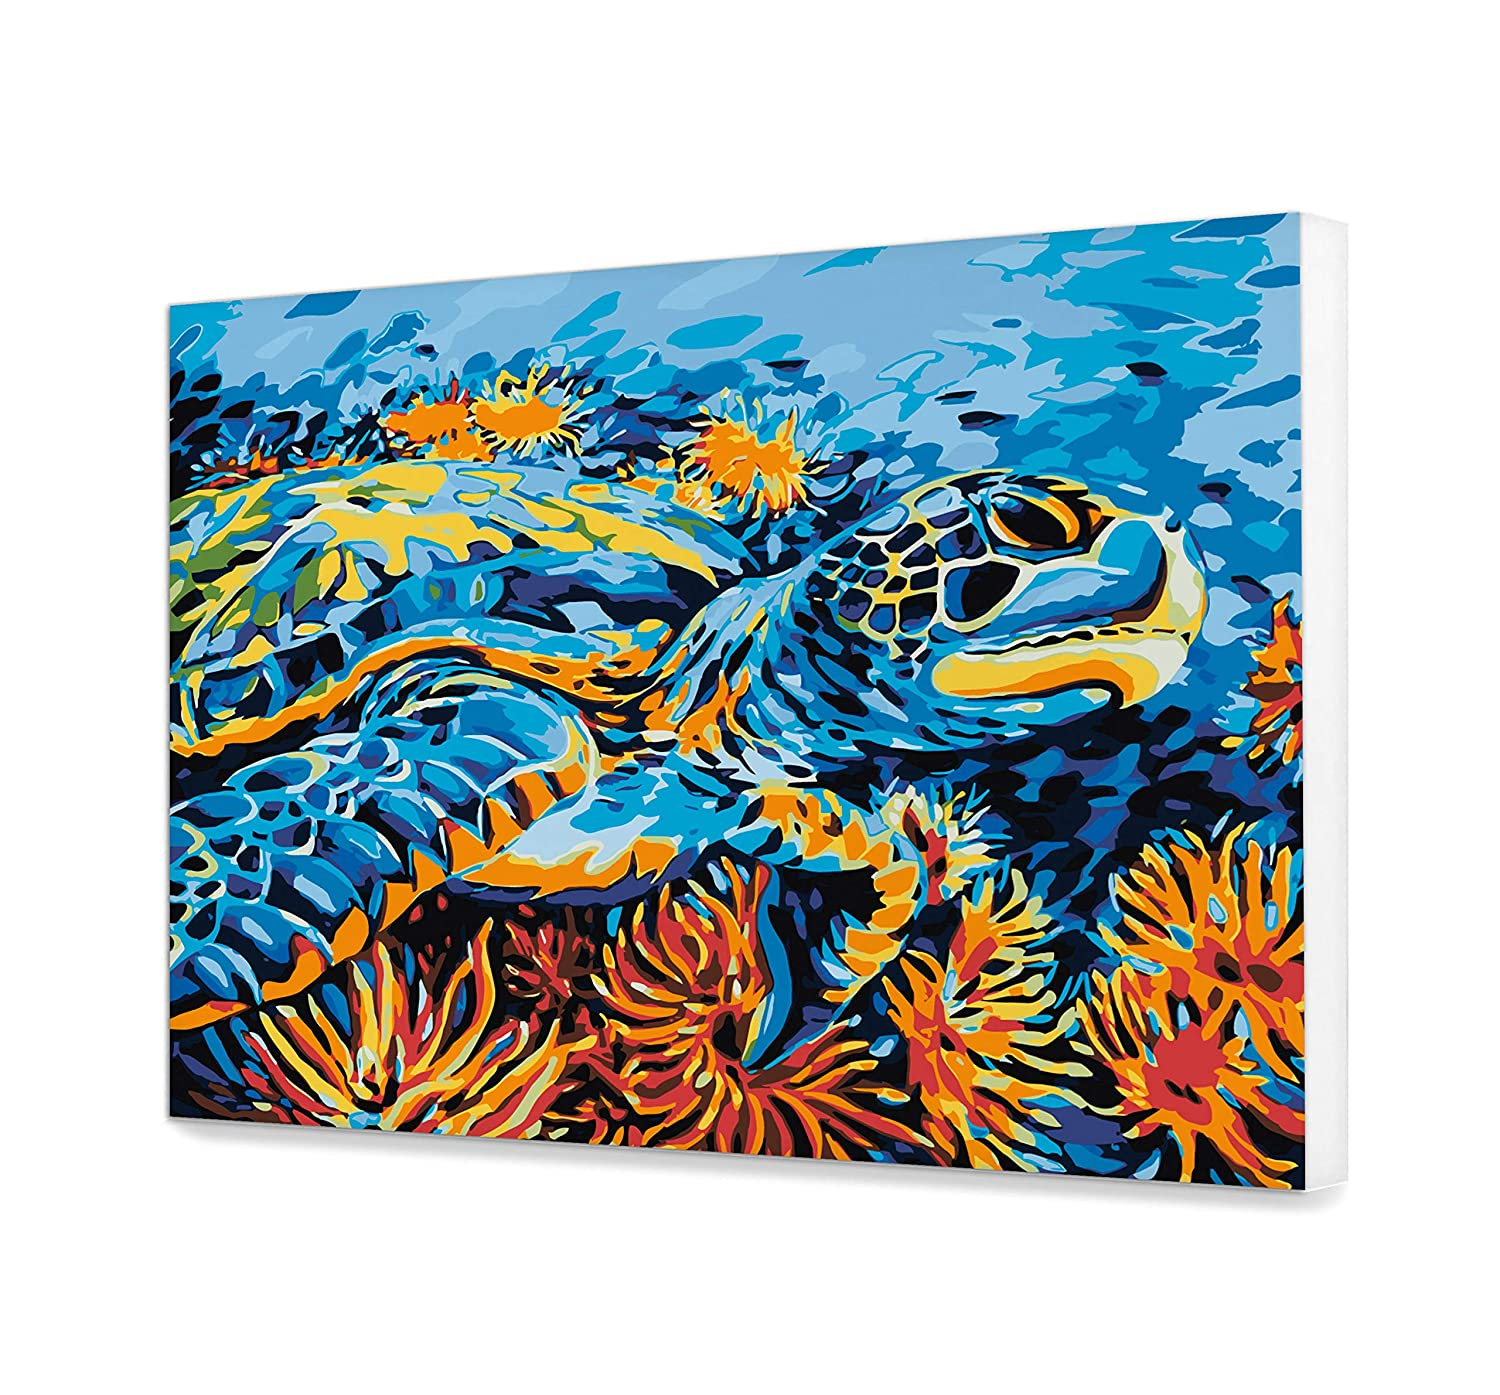 Turtle Painting By Numbers Acrylic Colorful Painting On Canvas Pop Art DIY Kit Adult Painting Ocean Home Decor Painting Wall Art Paint By Numbers